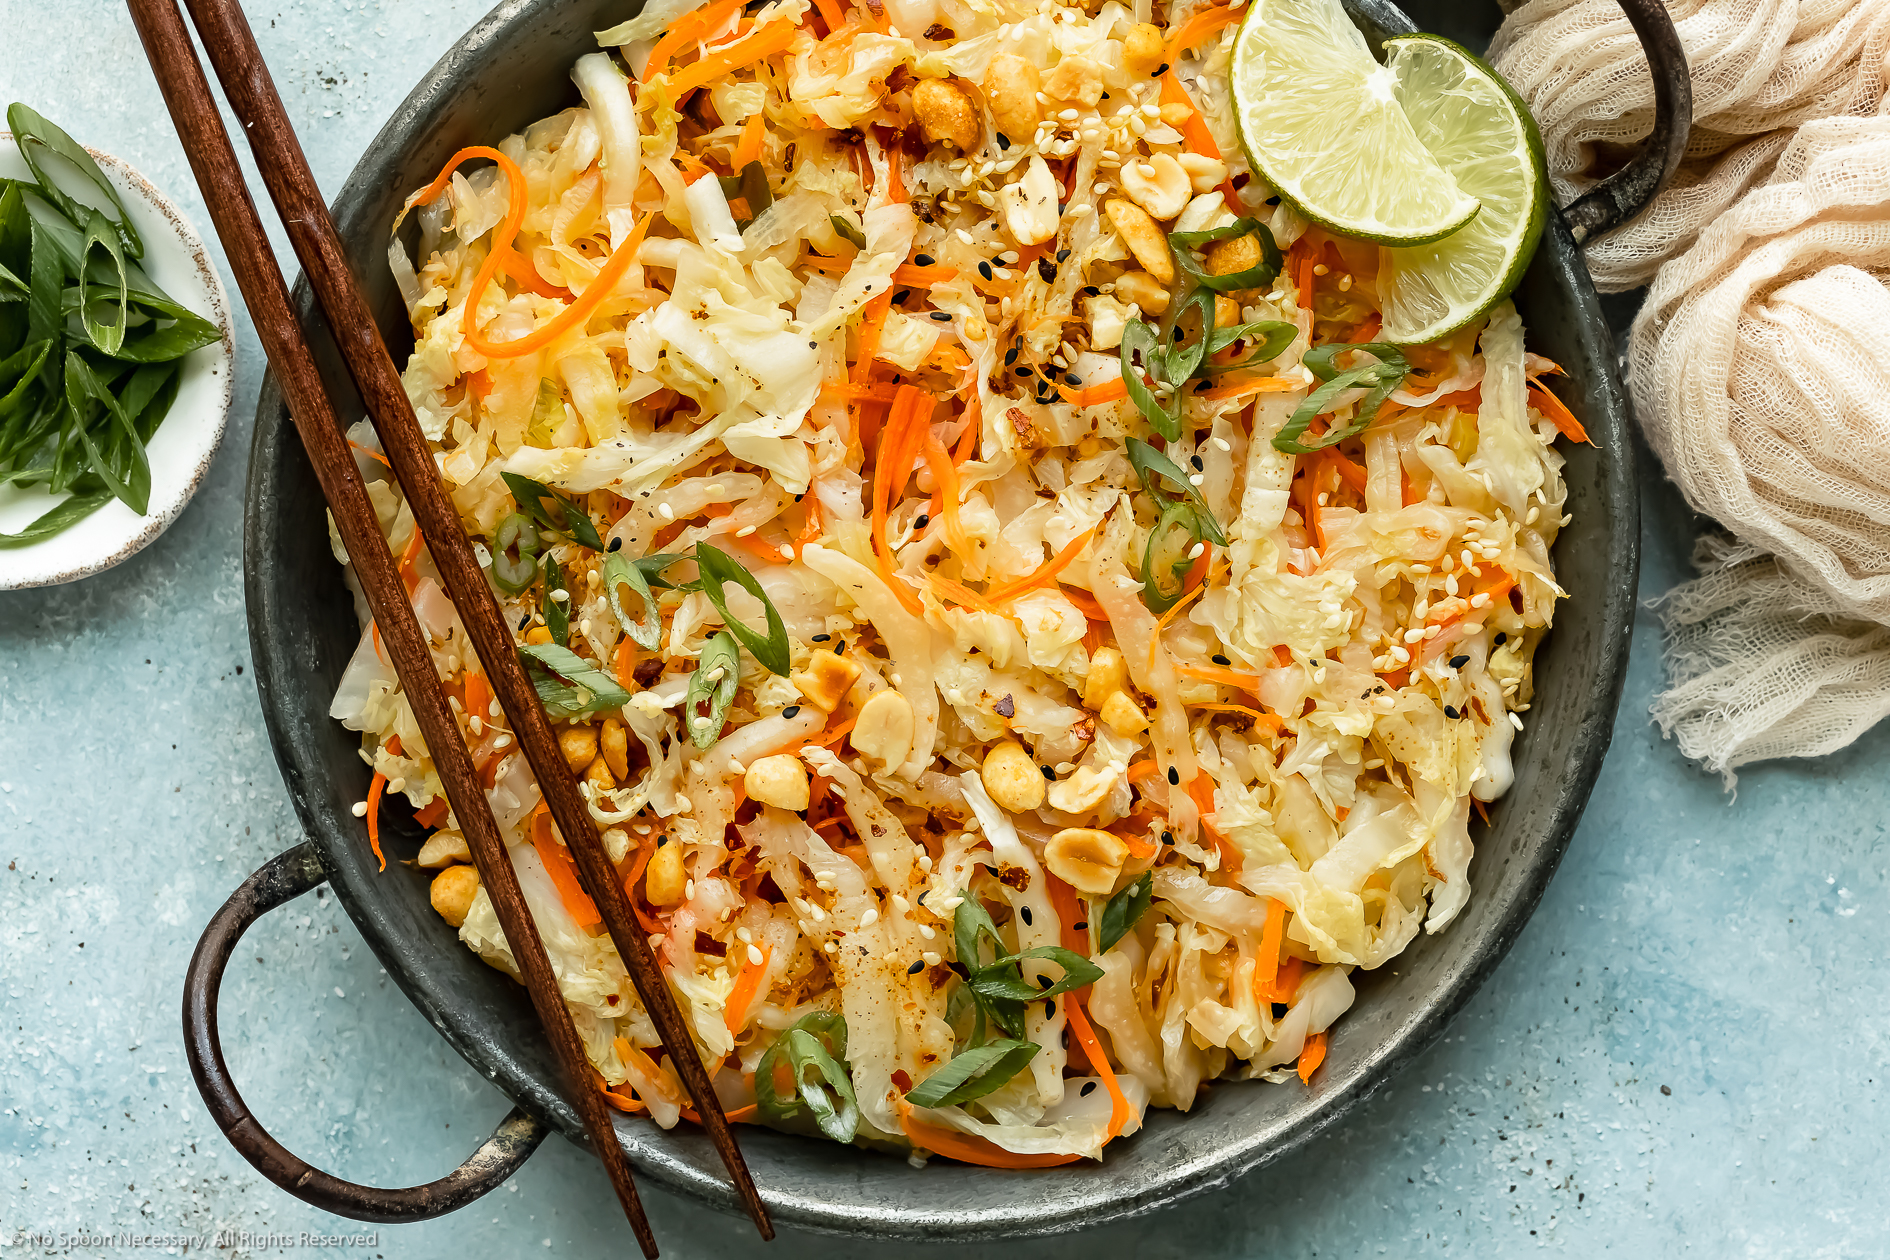 Stir Fried Cabbage Recipe